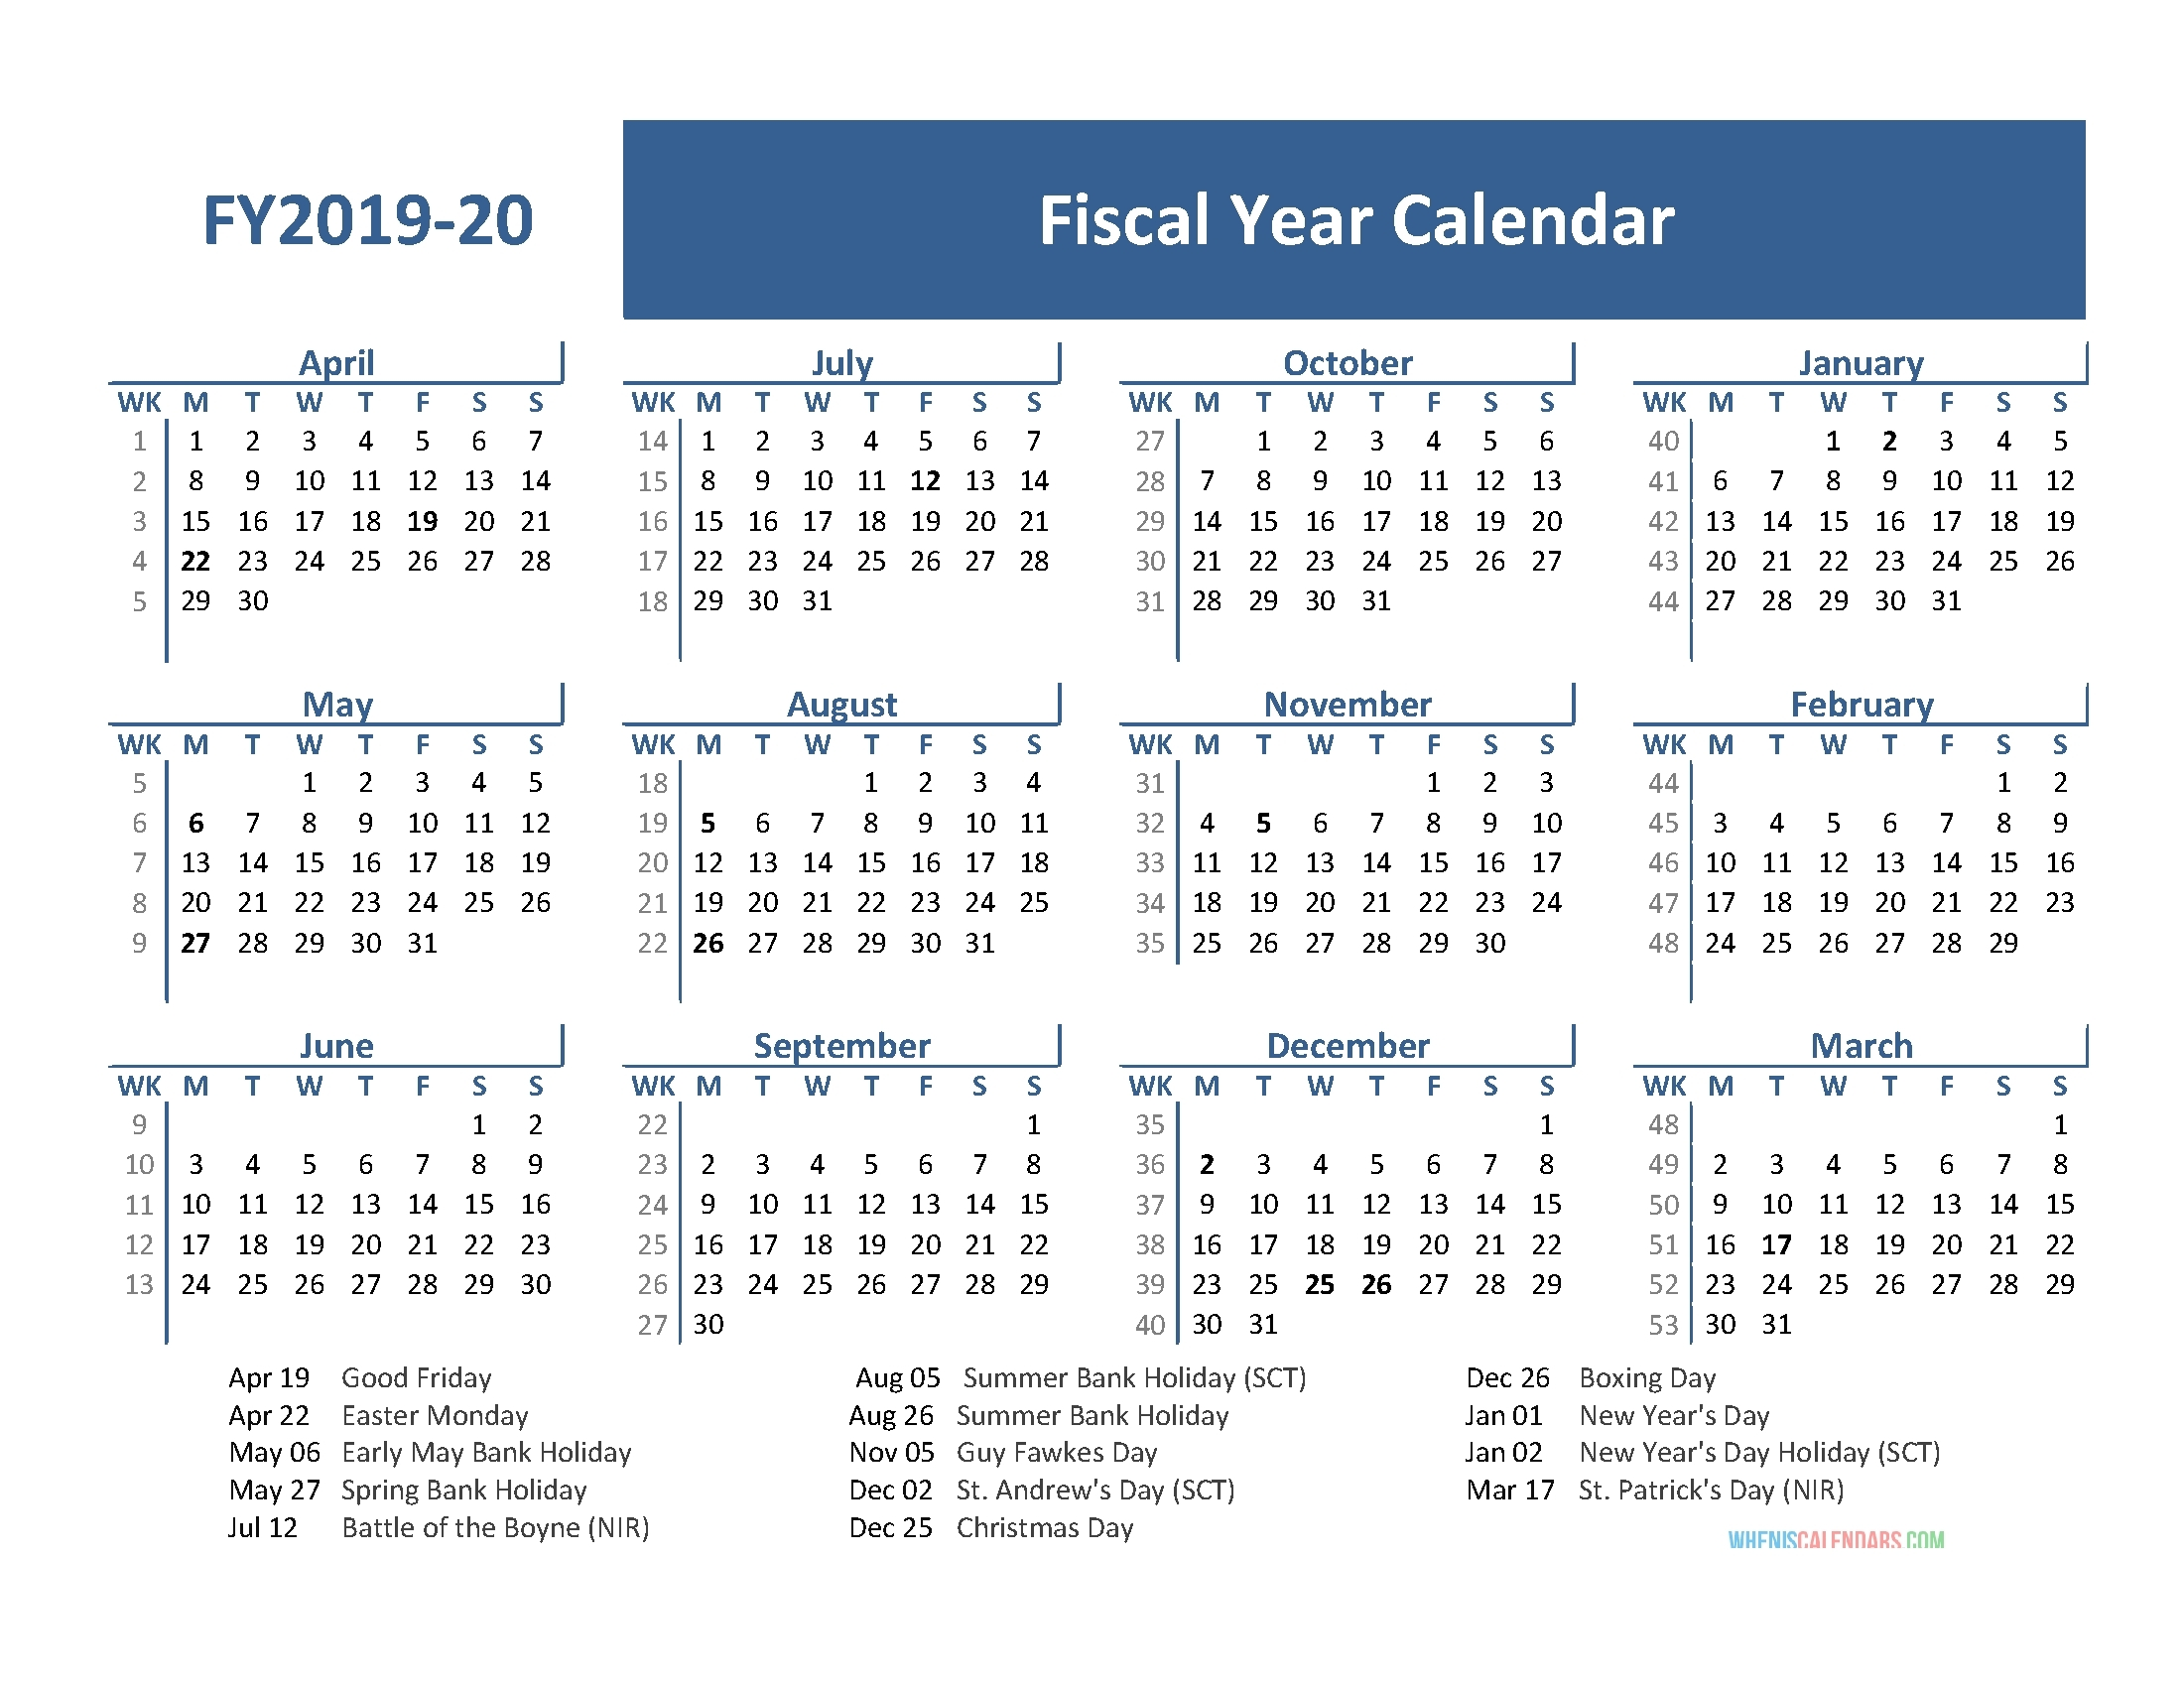 Collect Financial Year Calender With Week Numberes